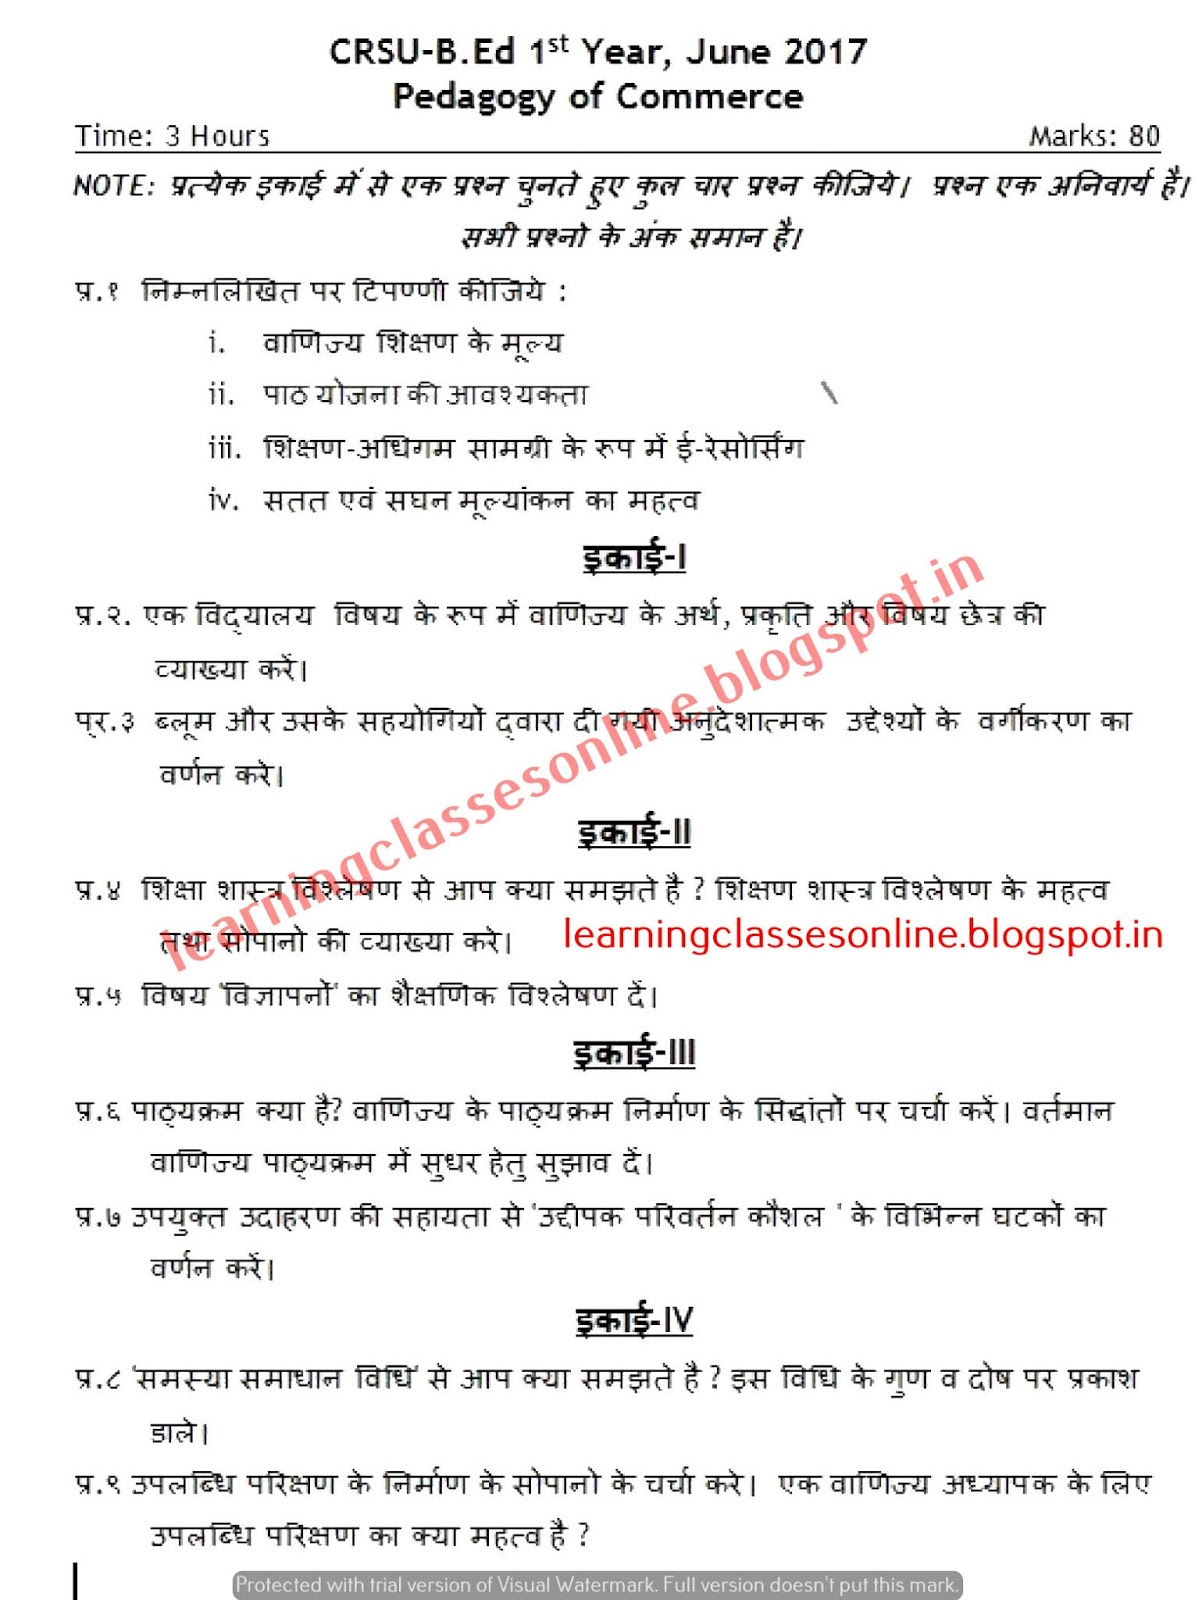 Pedagogy of Commerce Question paper